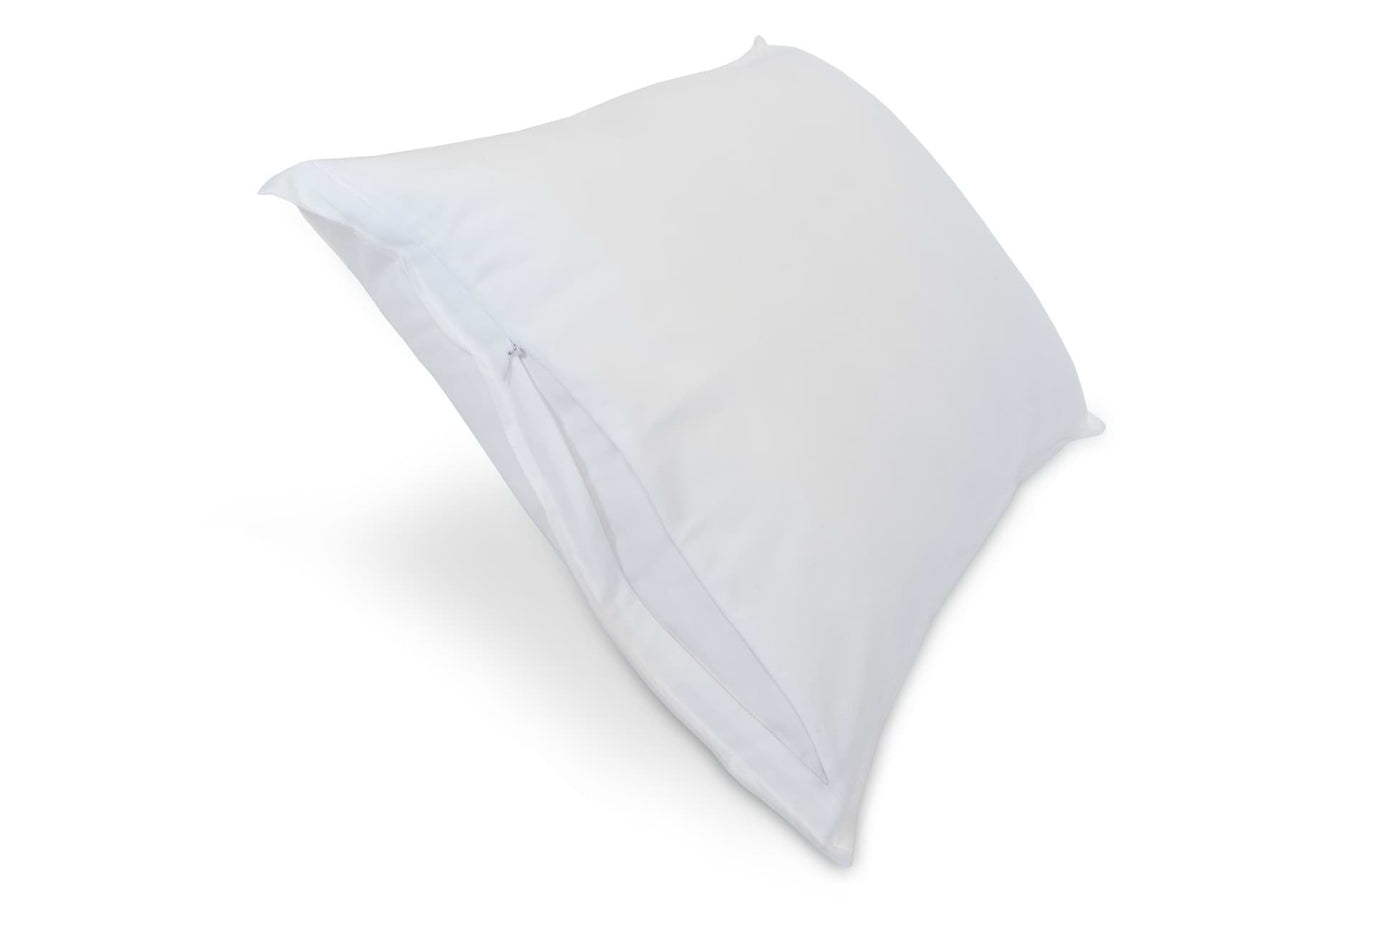 Martex Purity Stay Fresh Pillow